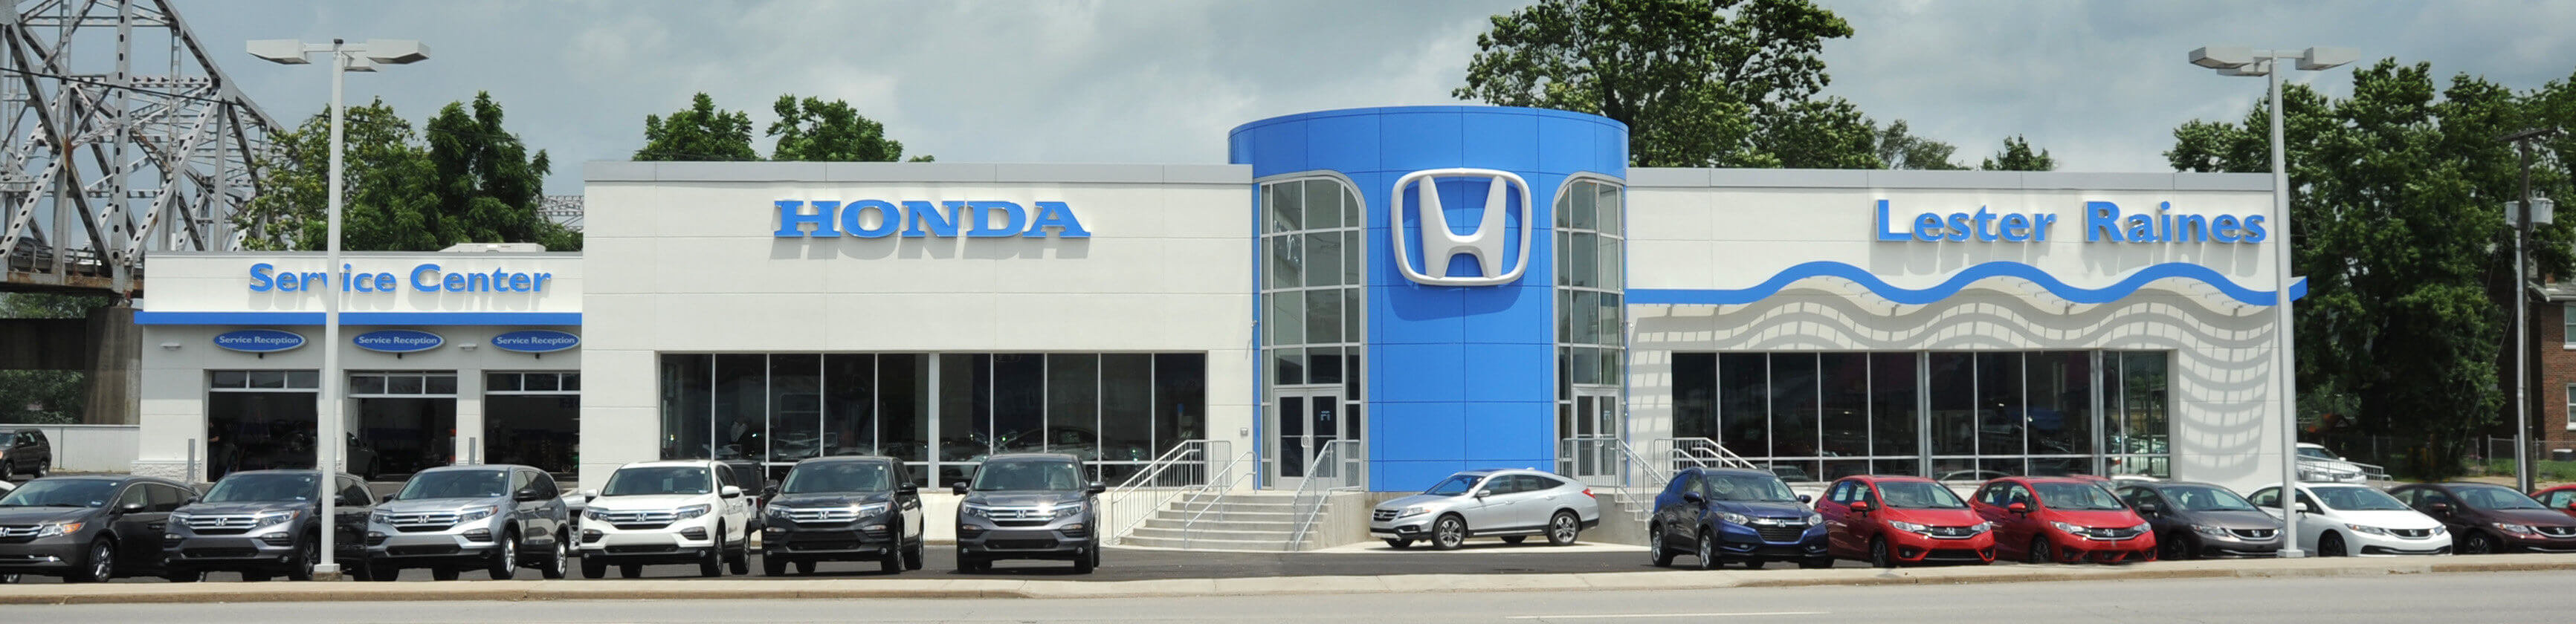 Hours and directions to lester raines honda south for Honda dealership hours